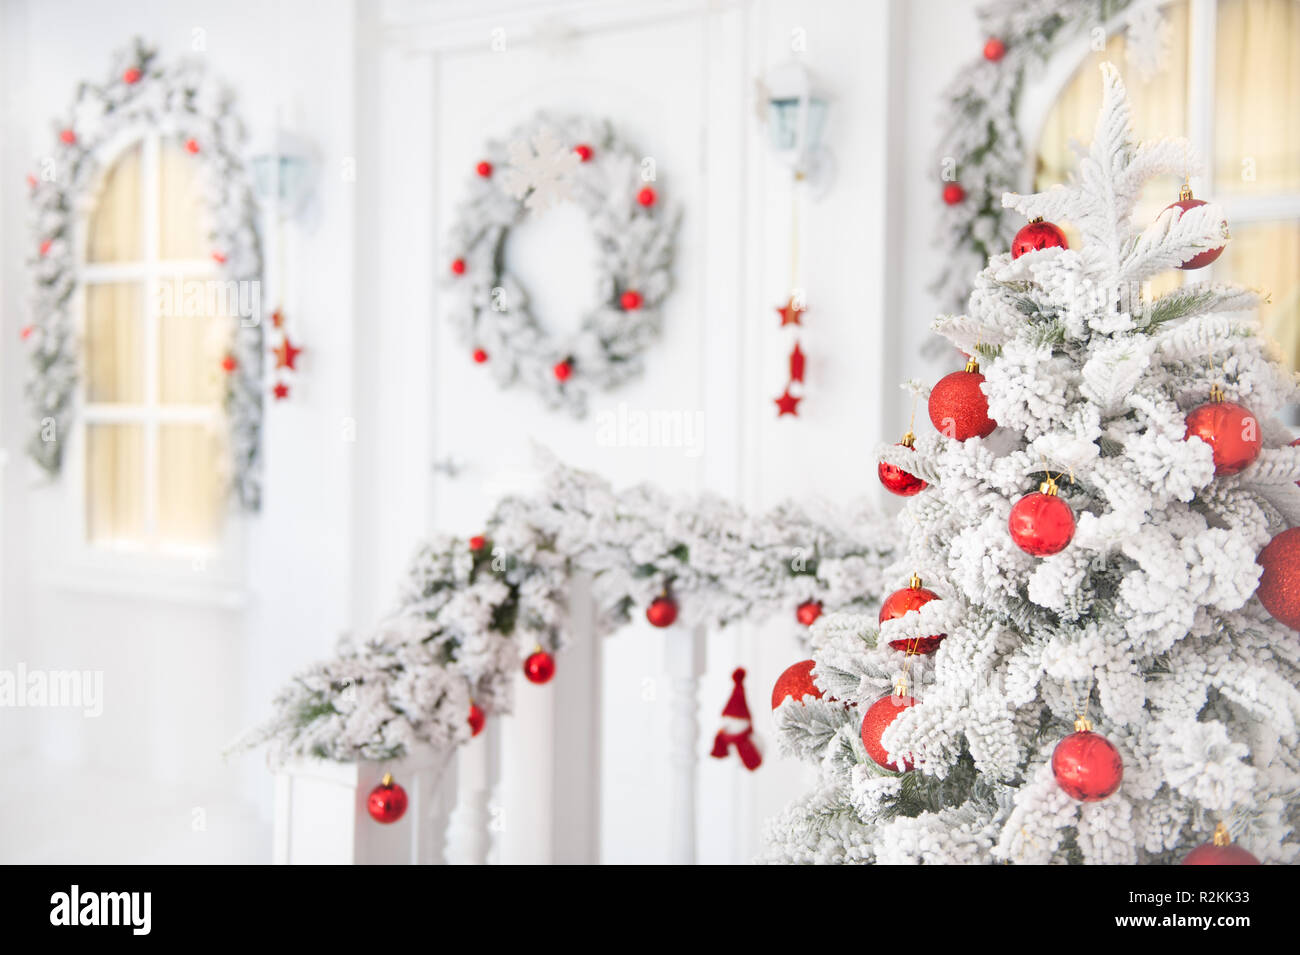 Merry Christmas Happy New Year Greeting Card White House Decorated